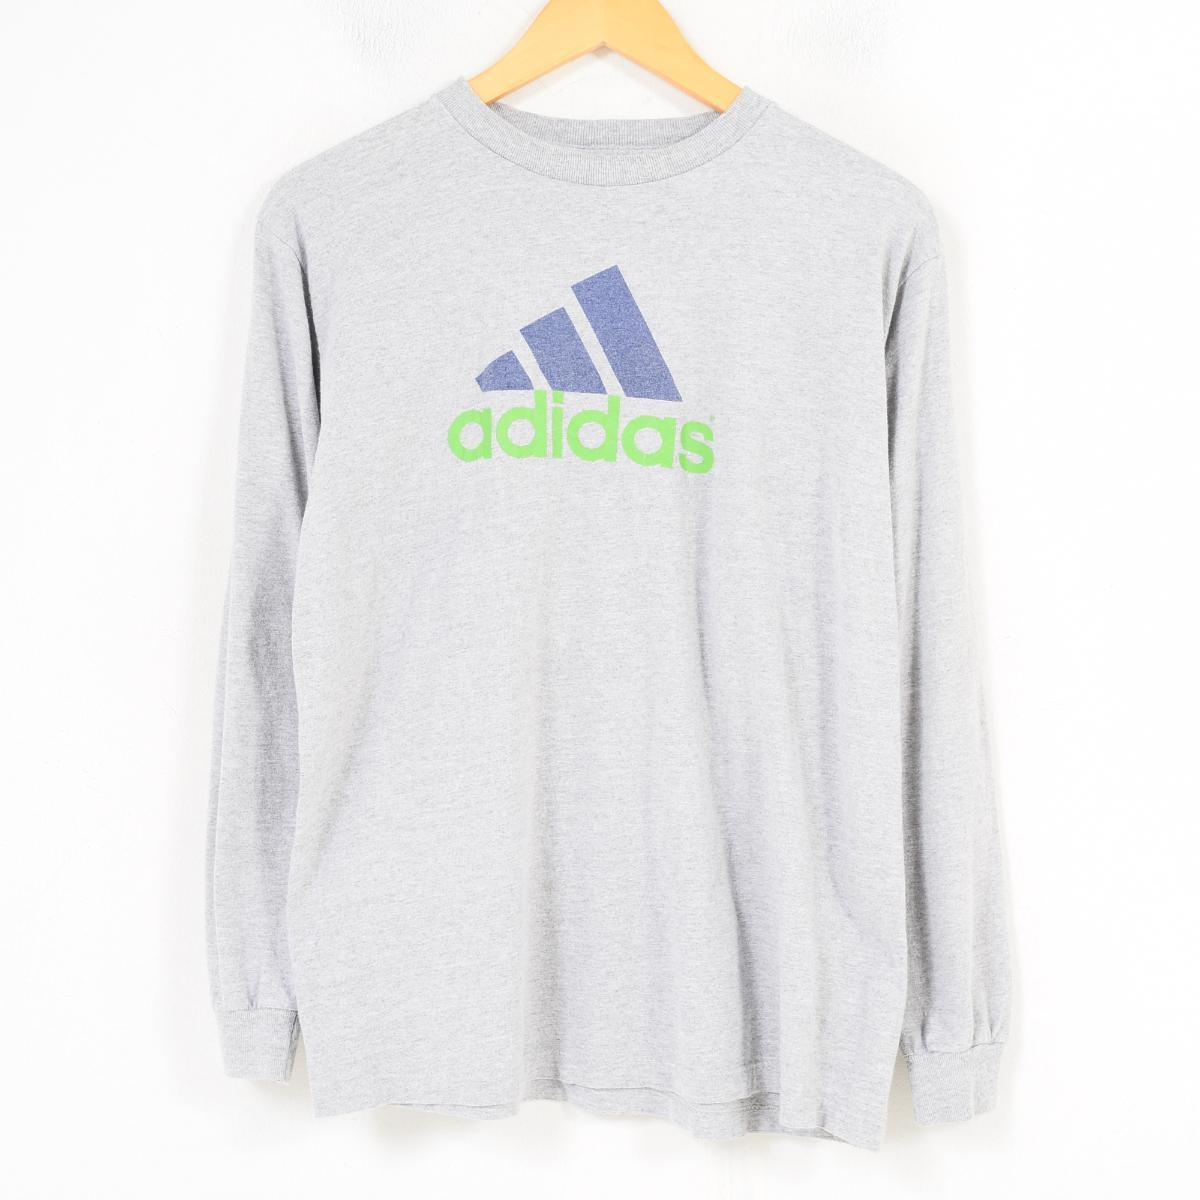 1a6466841 Men S /wap0377 in the 90s made in Adidas adidas long T-shirt Ron ...